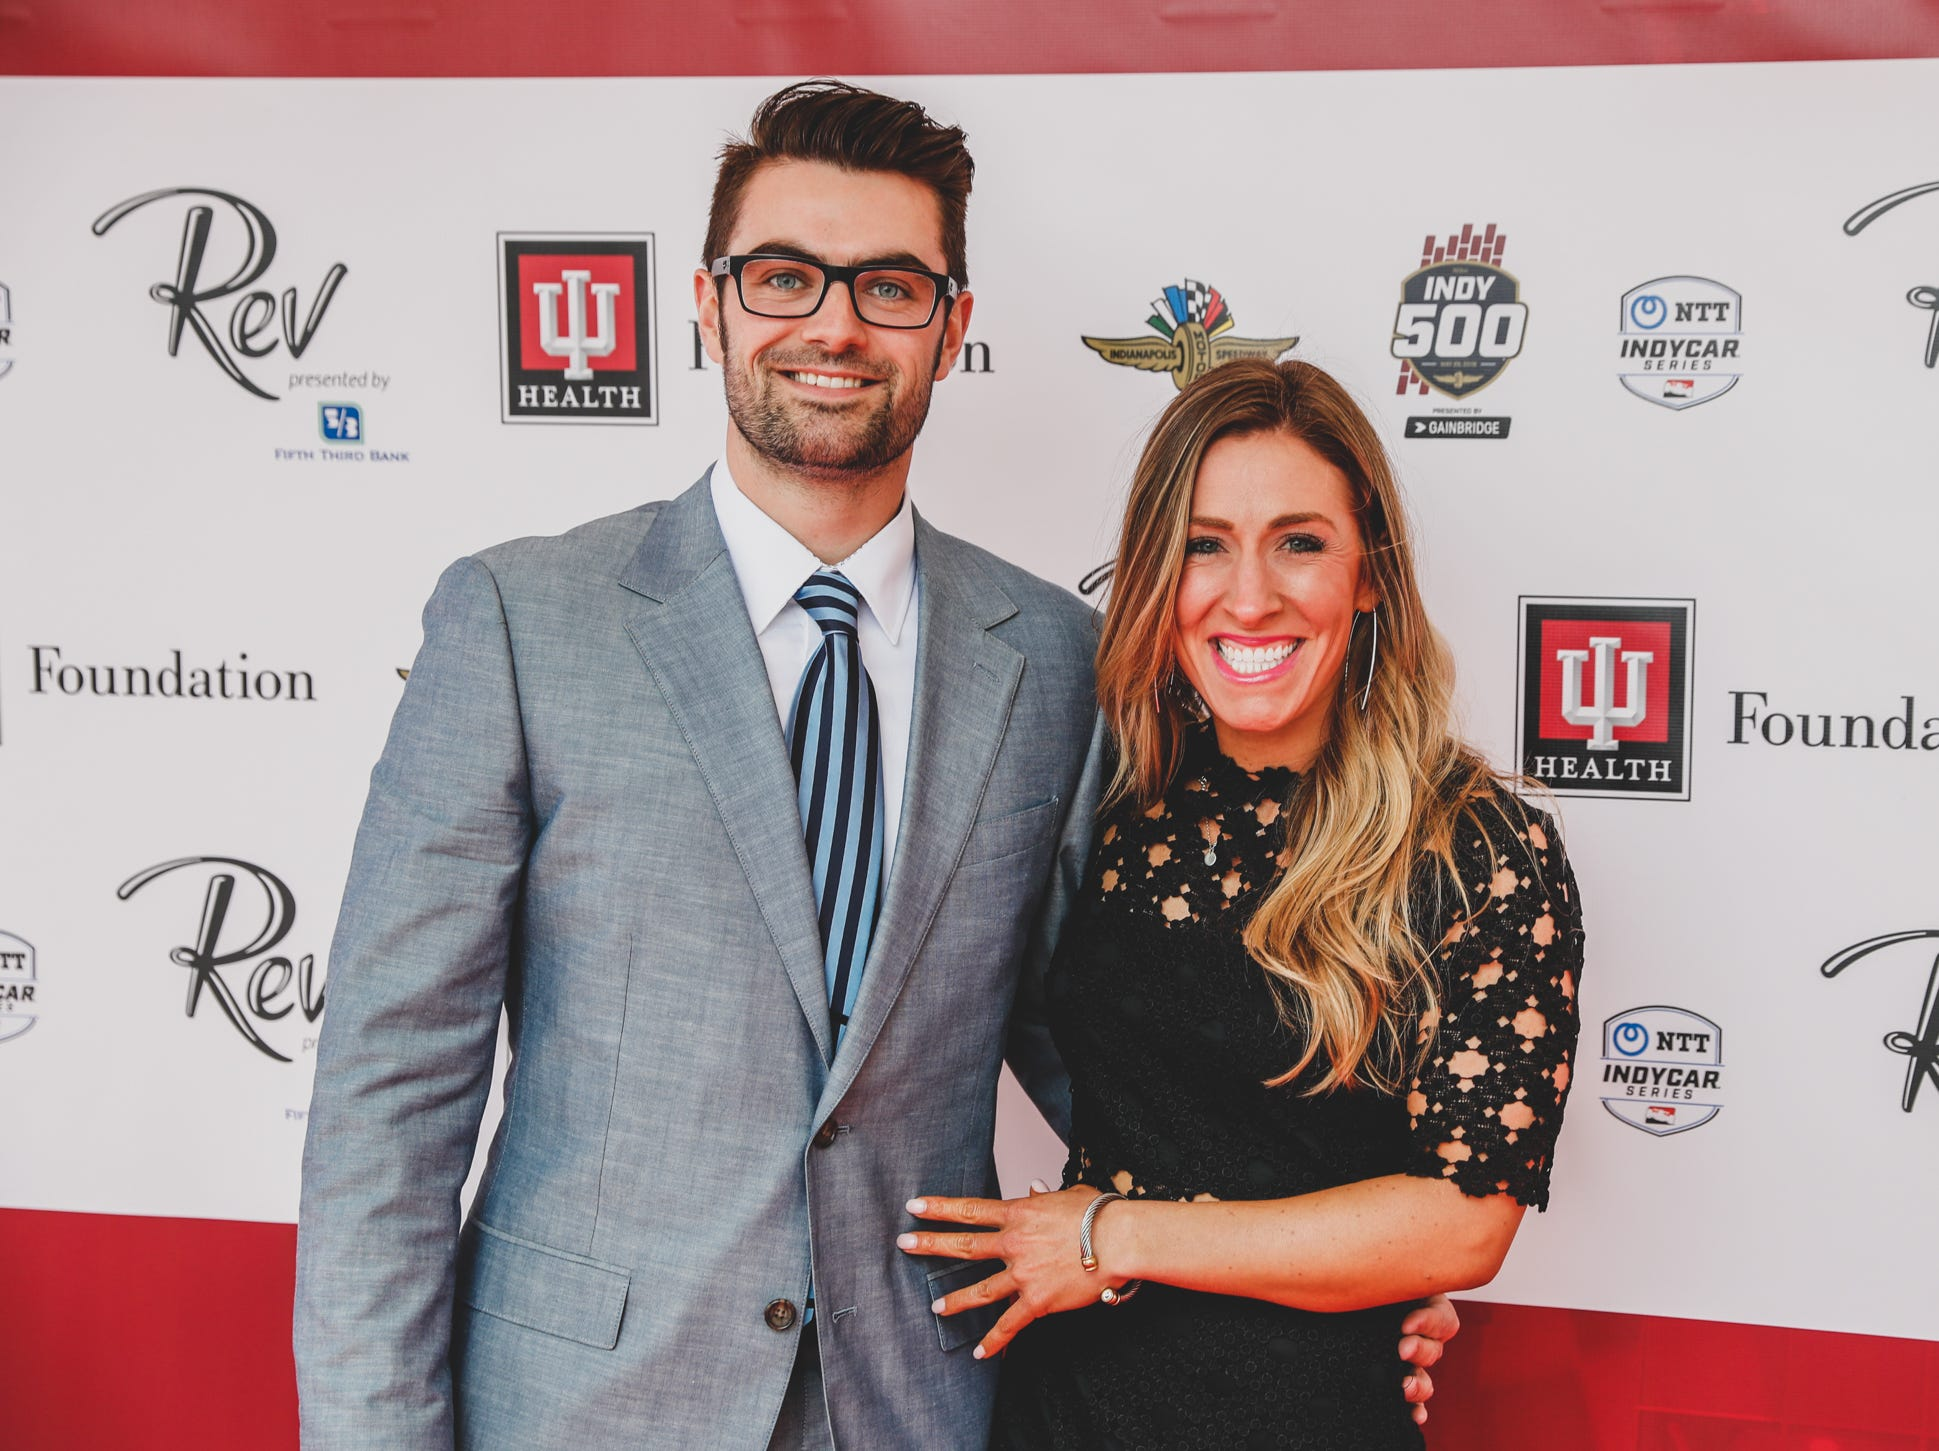 IndyCar driver Jack Harvey and Shelby Dock  walk the red carpet at the Rev Indy fundraiser, held at the Indianapolis Motor Speedway on Saturday, May 4, 2019. Funds raised support the IU Health Foundation statewide and the IU Health Emergency Medical Center at IMS.